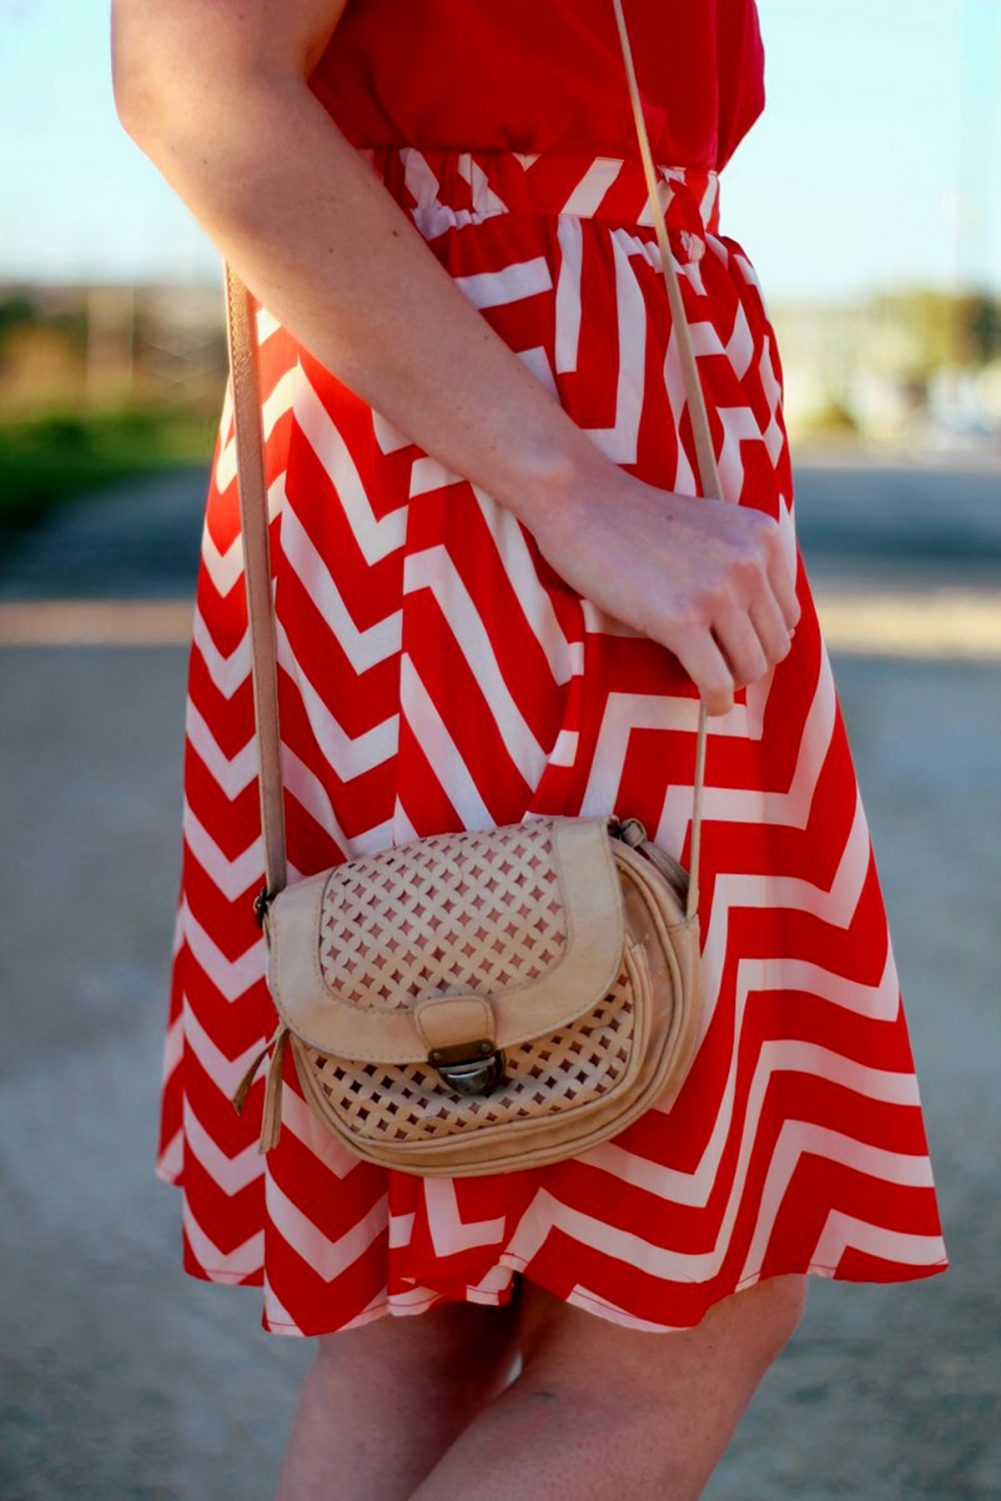 Outfit details Outfit: Vintage red top, thrifted orange chevron skirt, beige cross body purse